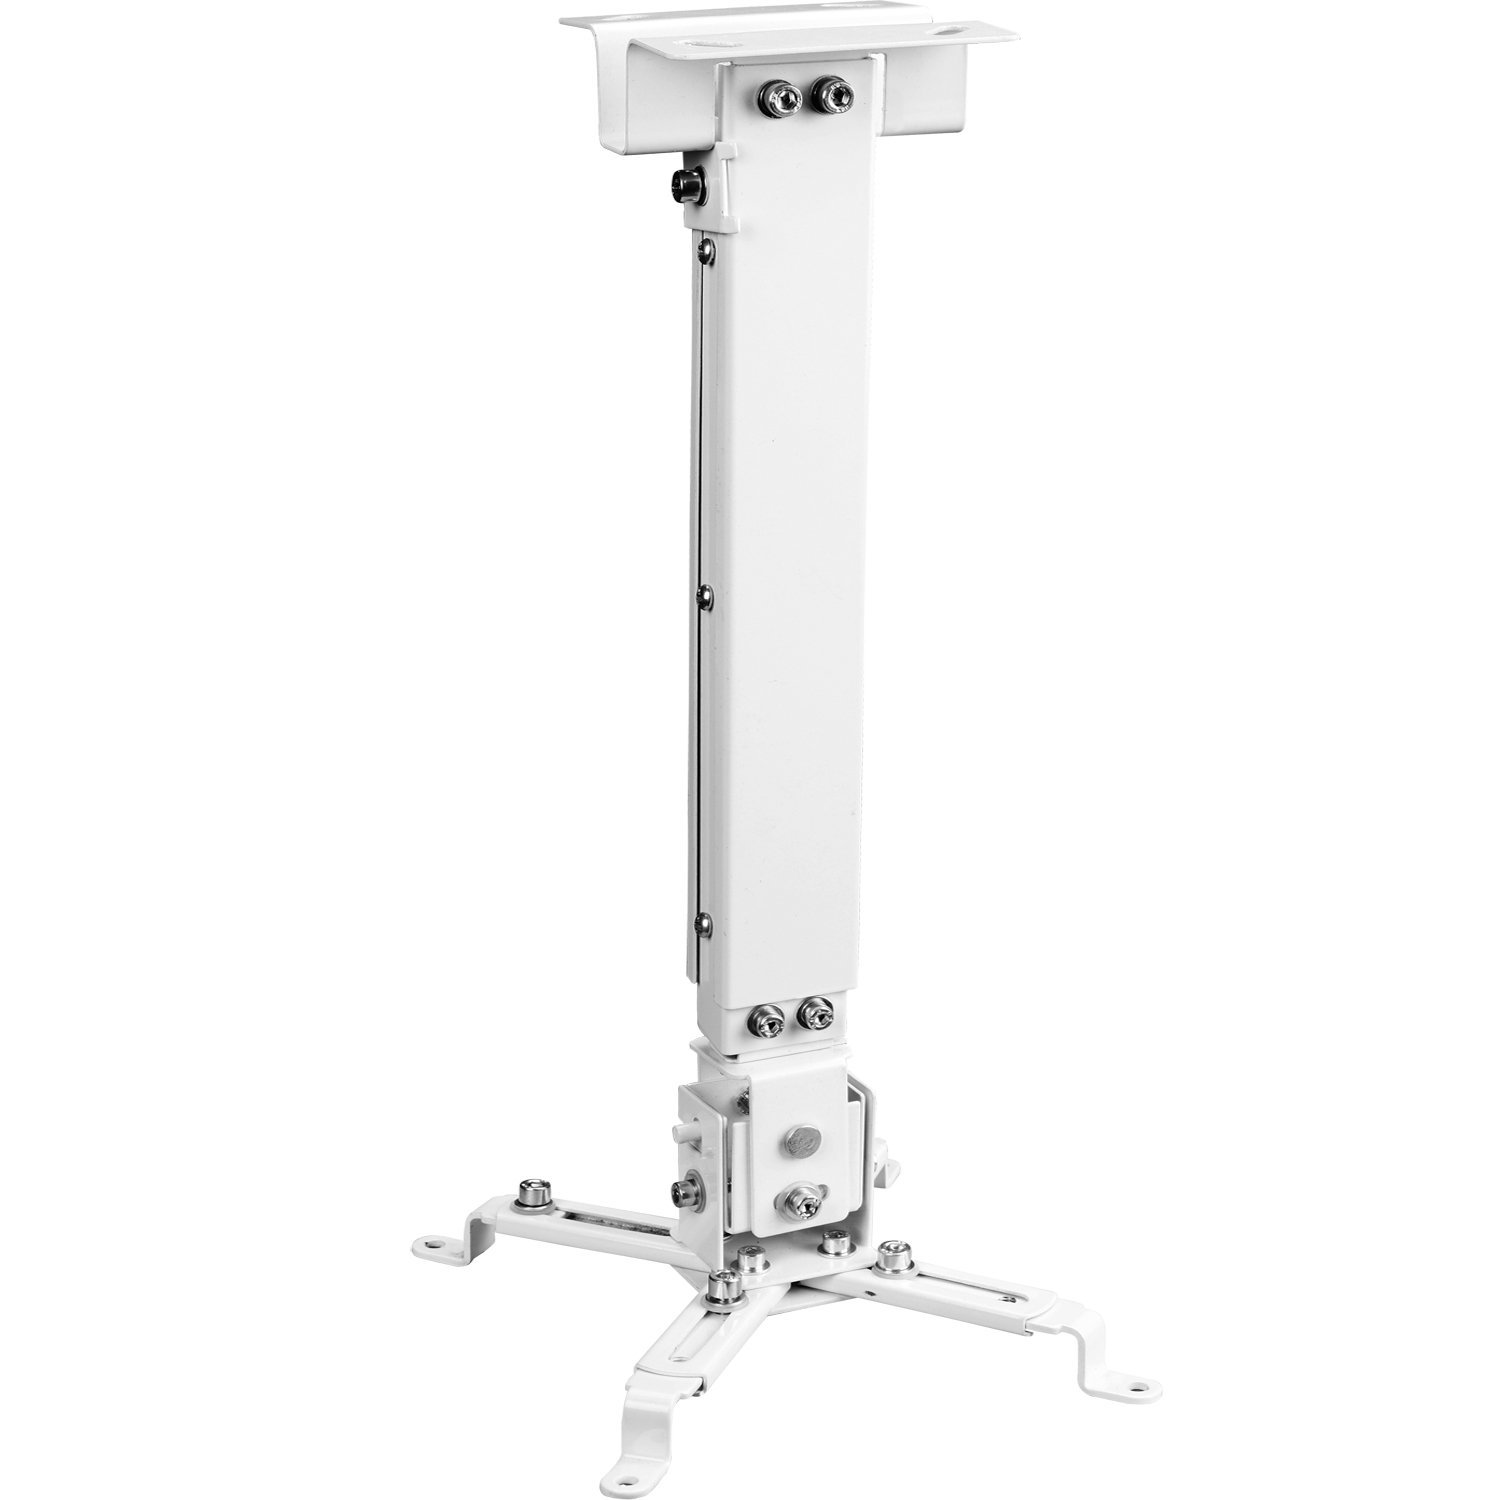 WALI Universal Multiple Adjustment Projector Flat Ceiling Mount Bracket with 25.6 inch Extension Pole, Hold up to 44 lbs. (PM-001-WHT), White